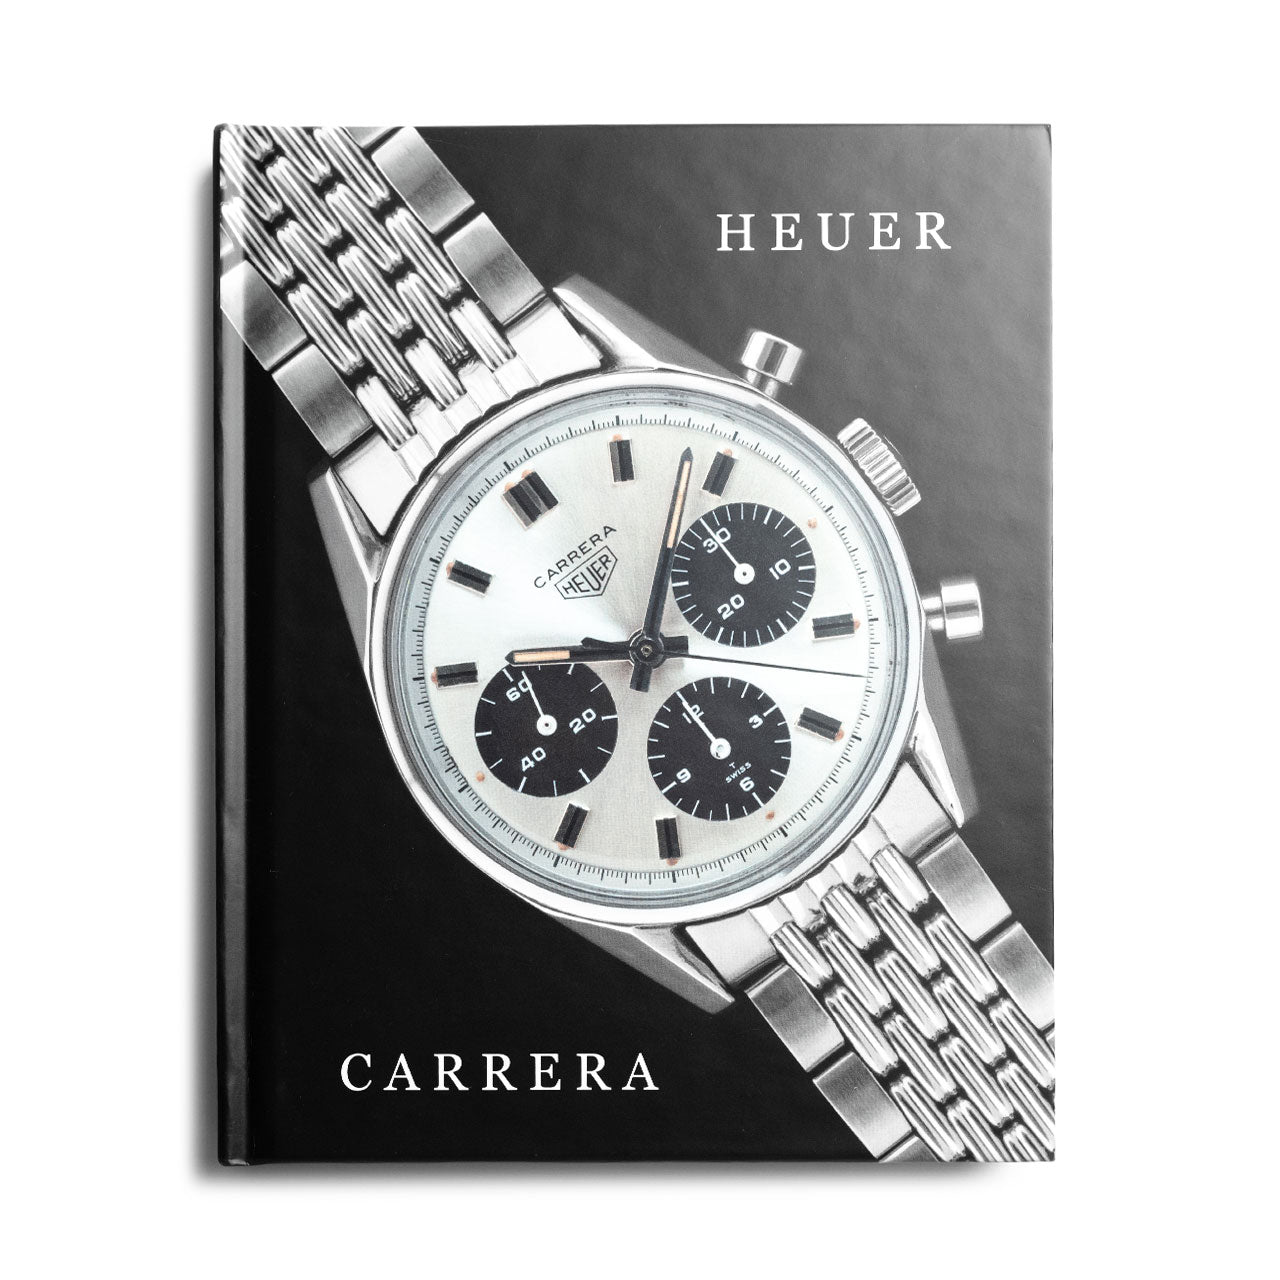 Heuer Carrera Chronographs 1963-1985